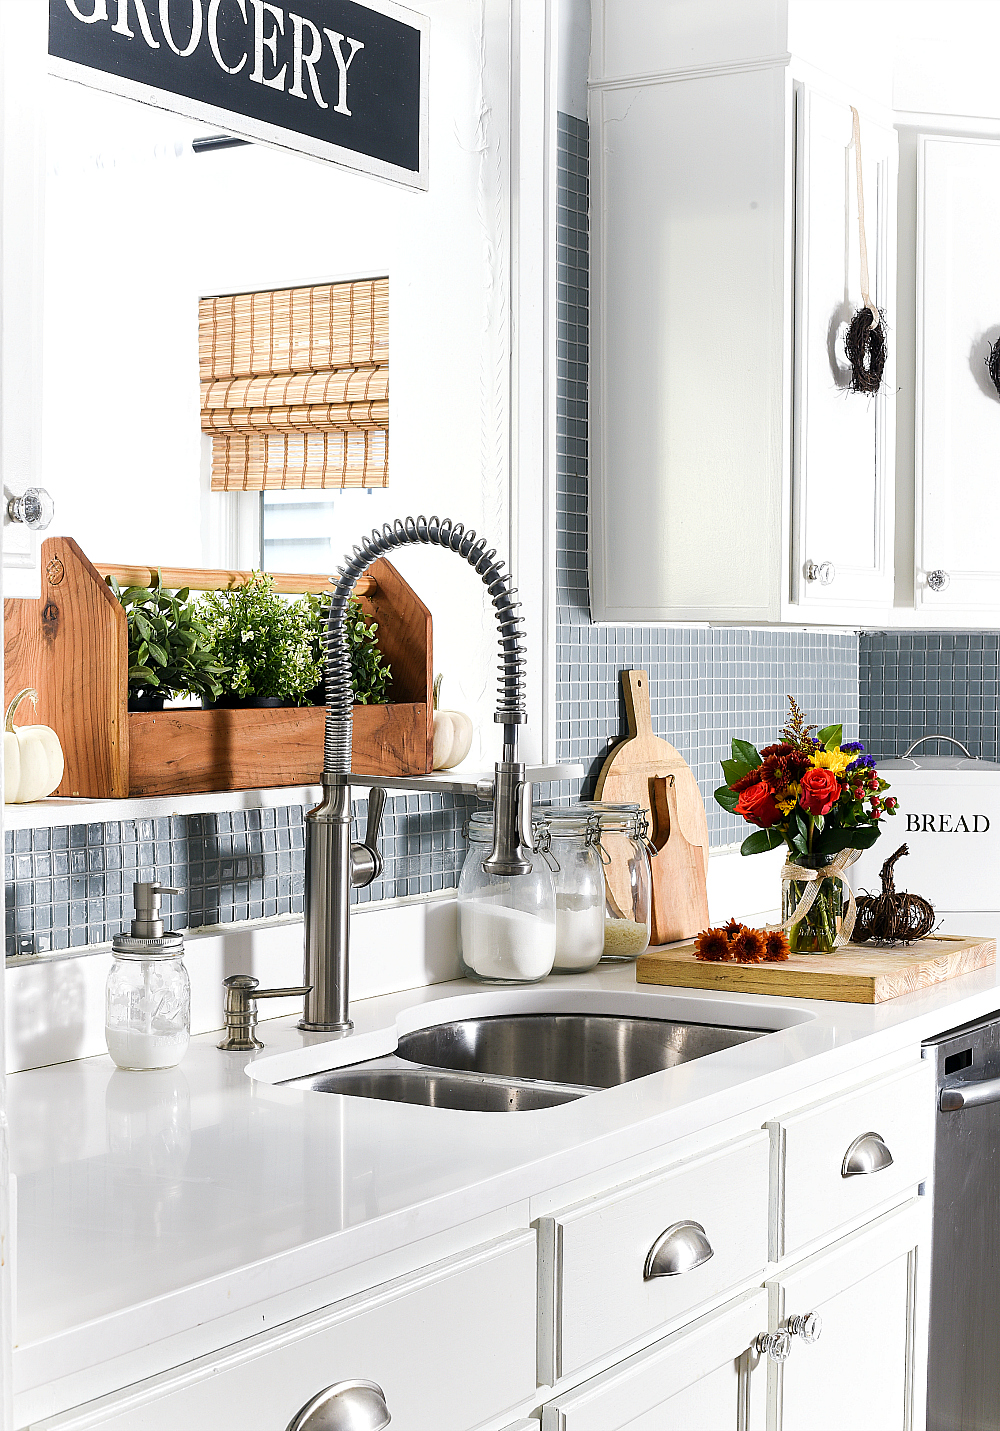 Fall in the Kitchen - White Kitchen cabinets, blue glass tile backsplash